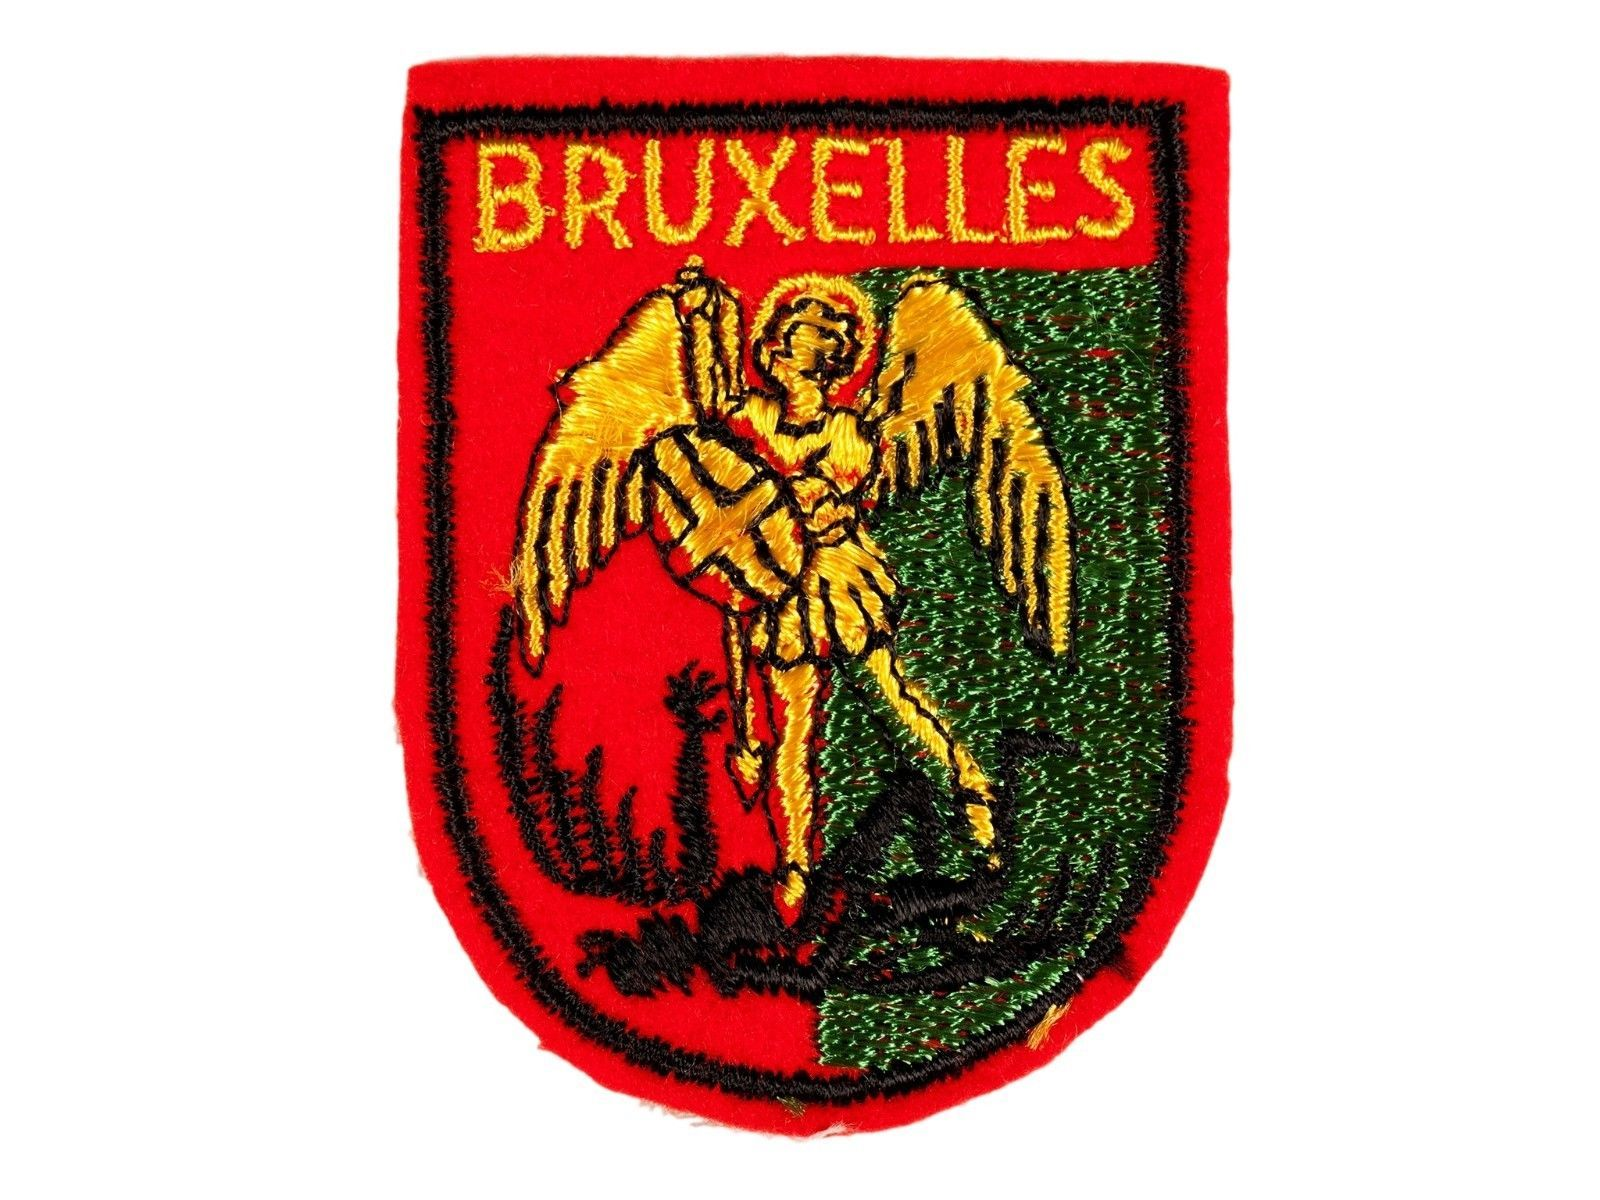 Primary image for FREE SHIP: Vintage Brussels Bruxelles Sew-on Fabric Patch International Souvenir